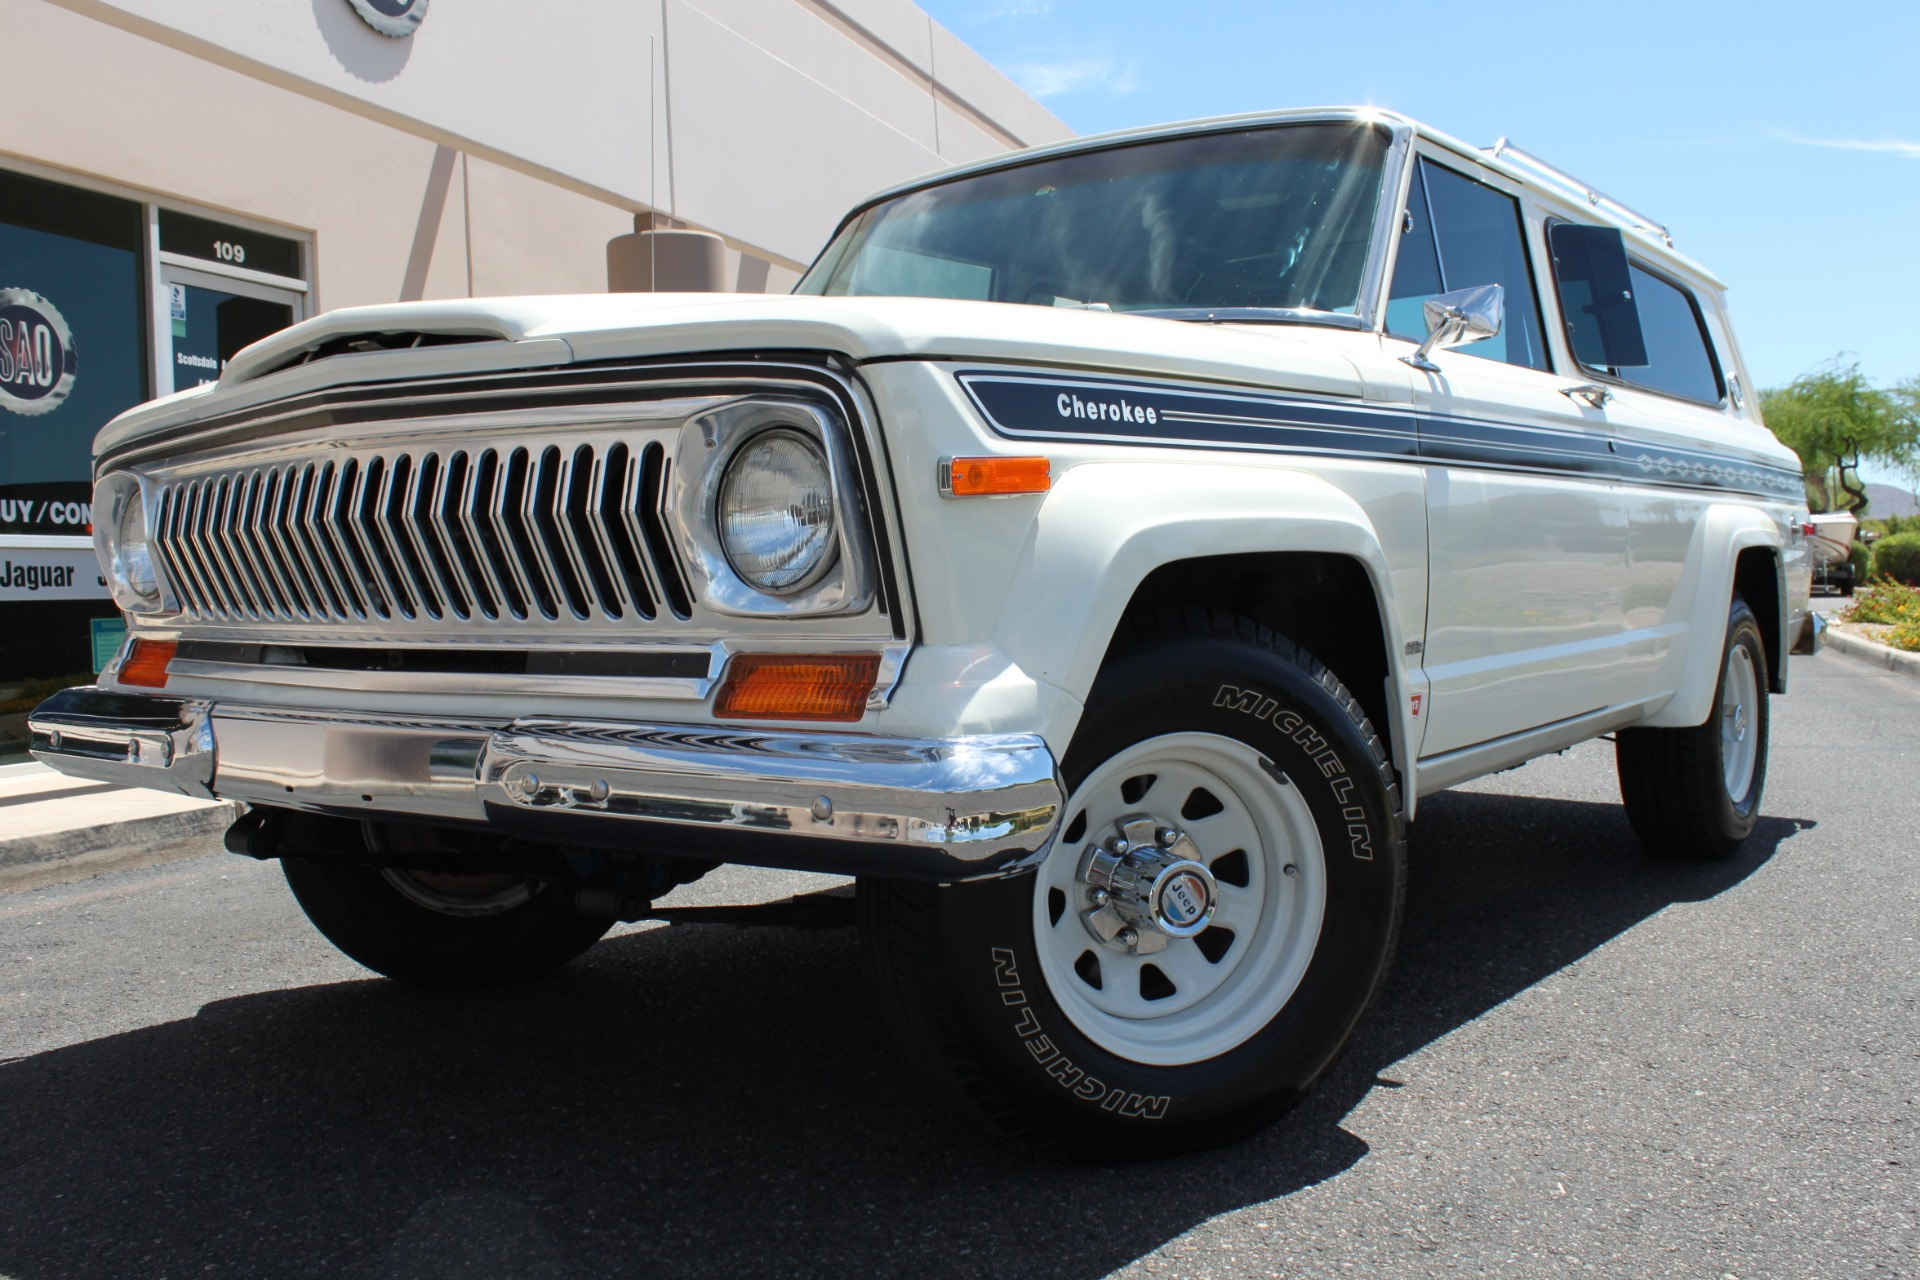 1977 Jeep Cherokee S Widetrack 4X4 401 V8 Stock # P1236 for